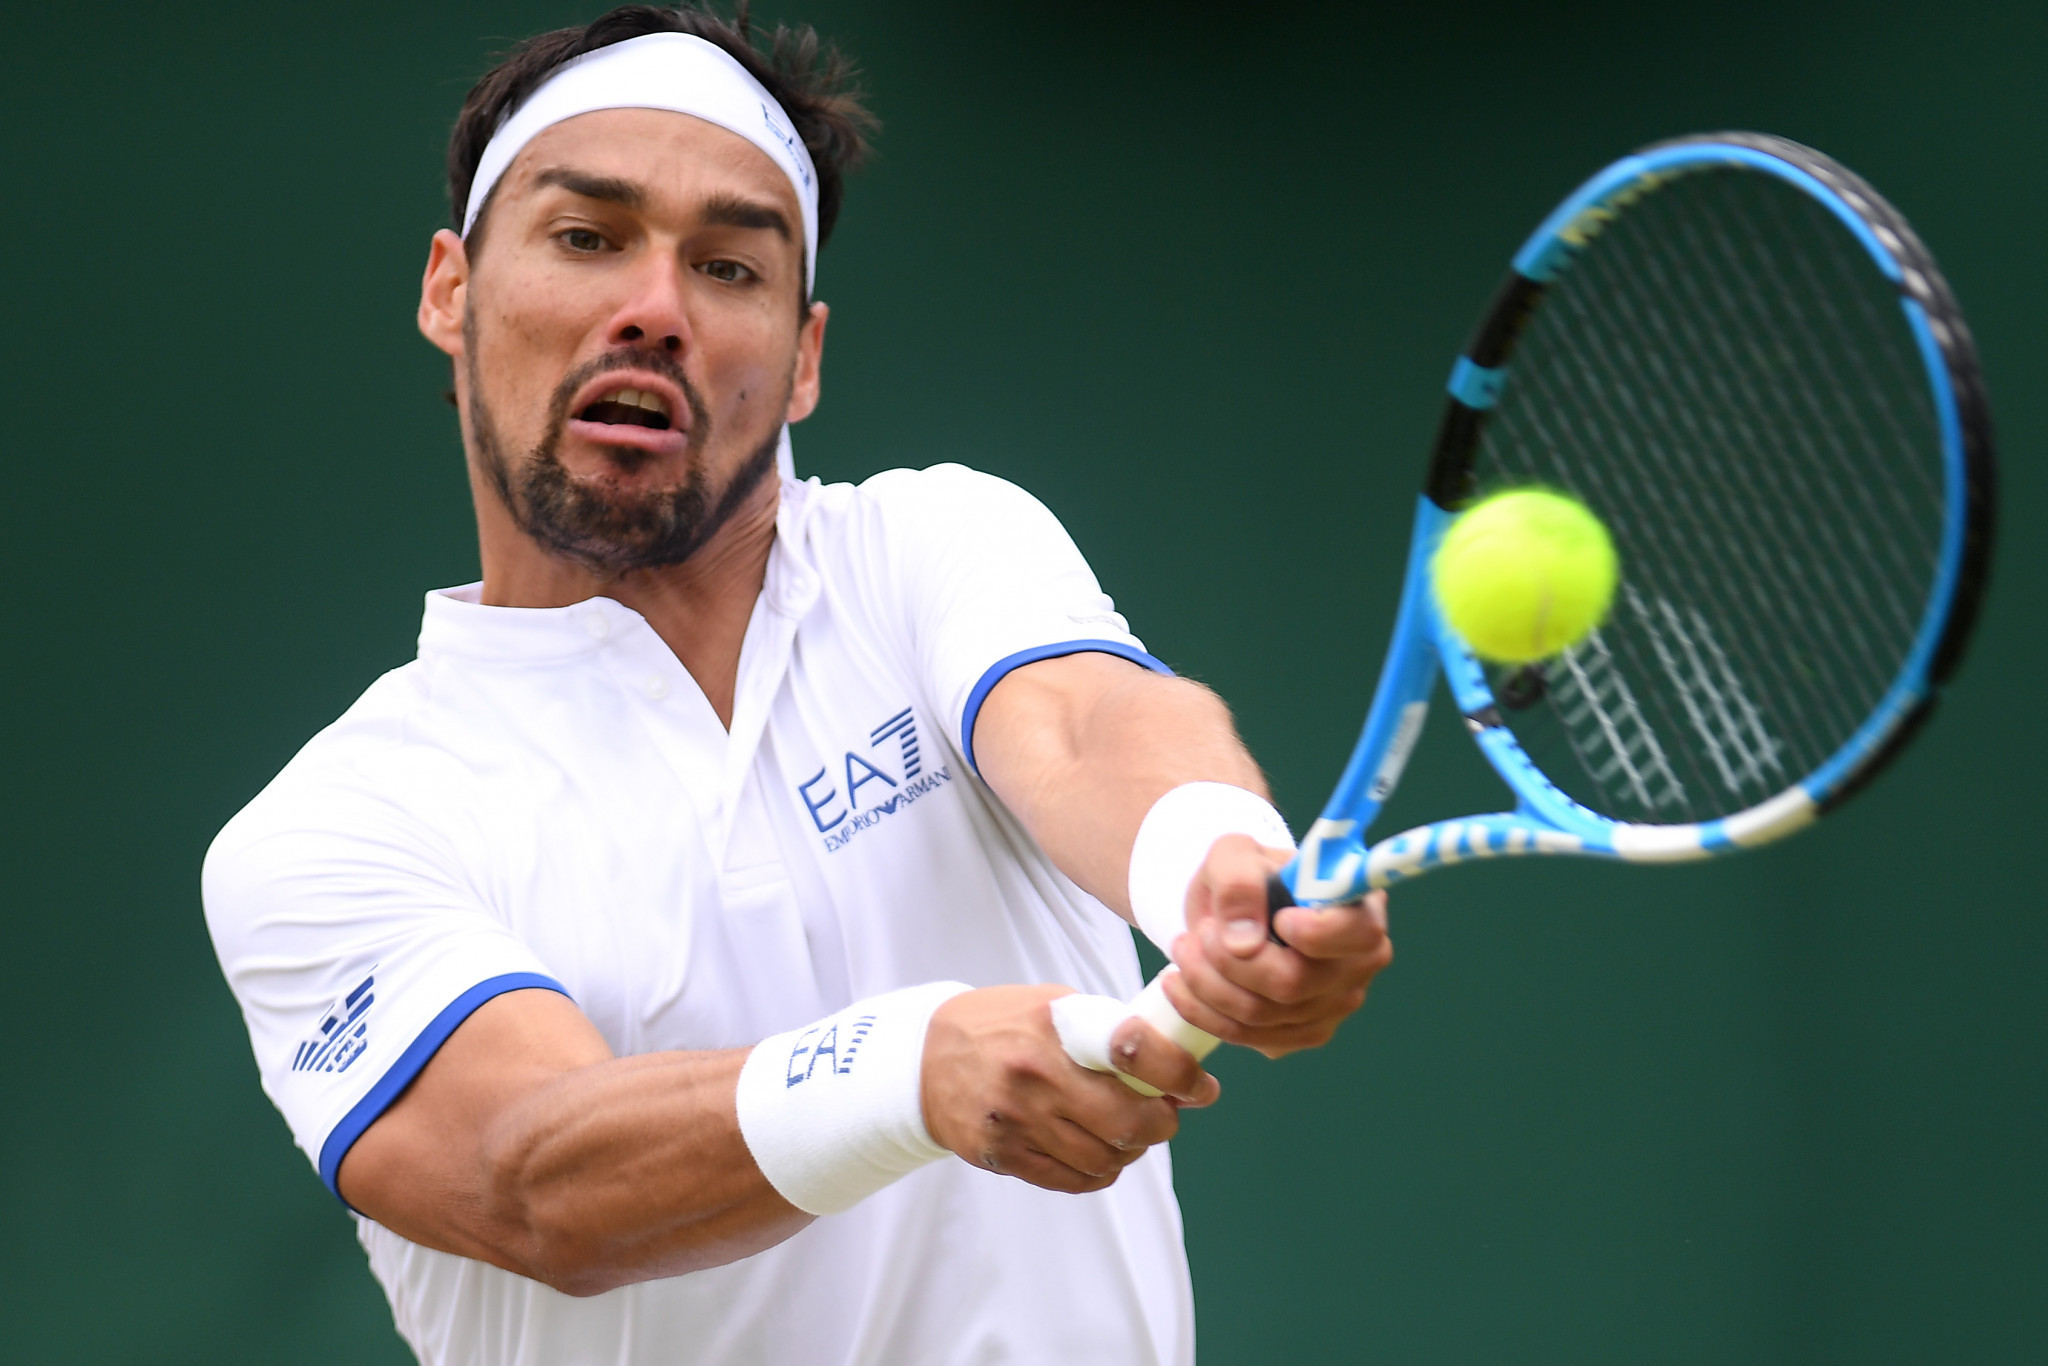 Fabio Fognini apologised for a comment he made during his defeat to Tennys Sandgren ©Getty Images